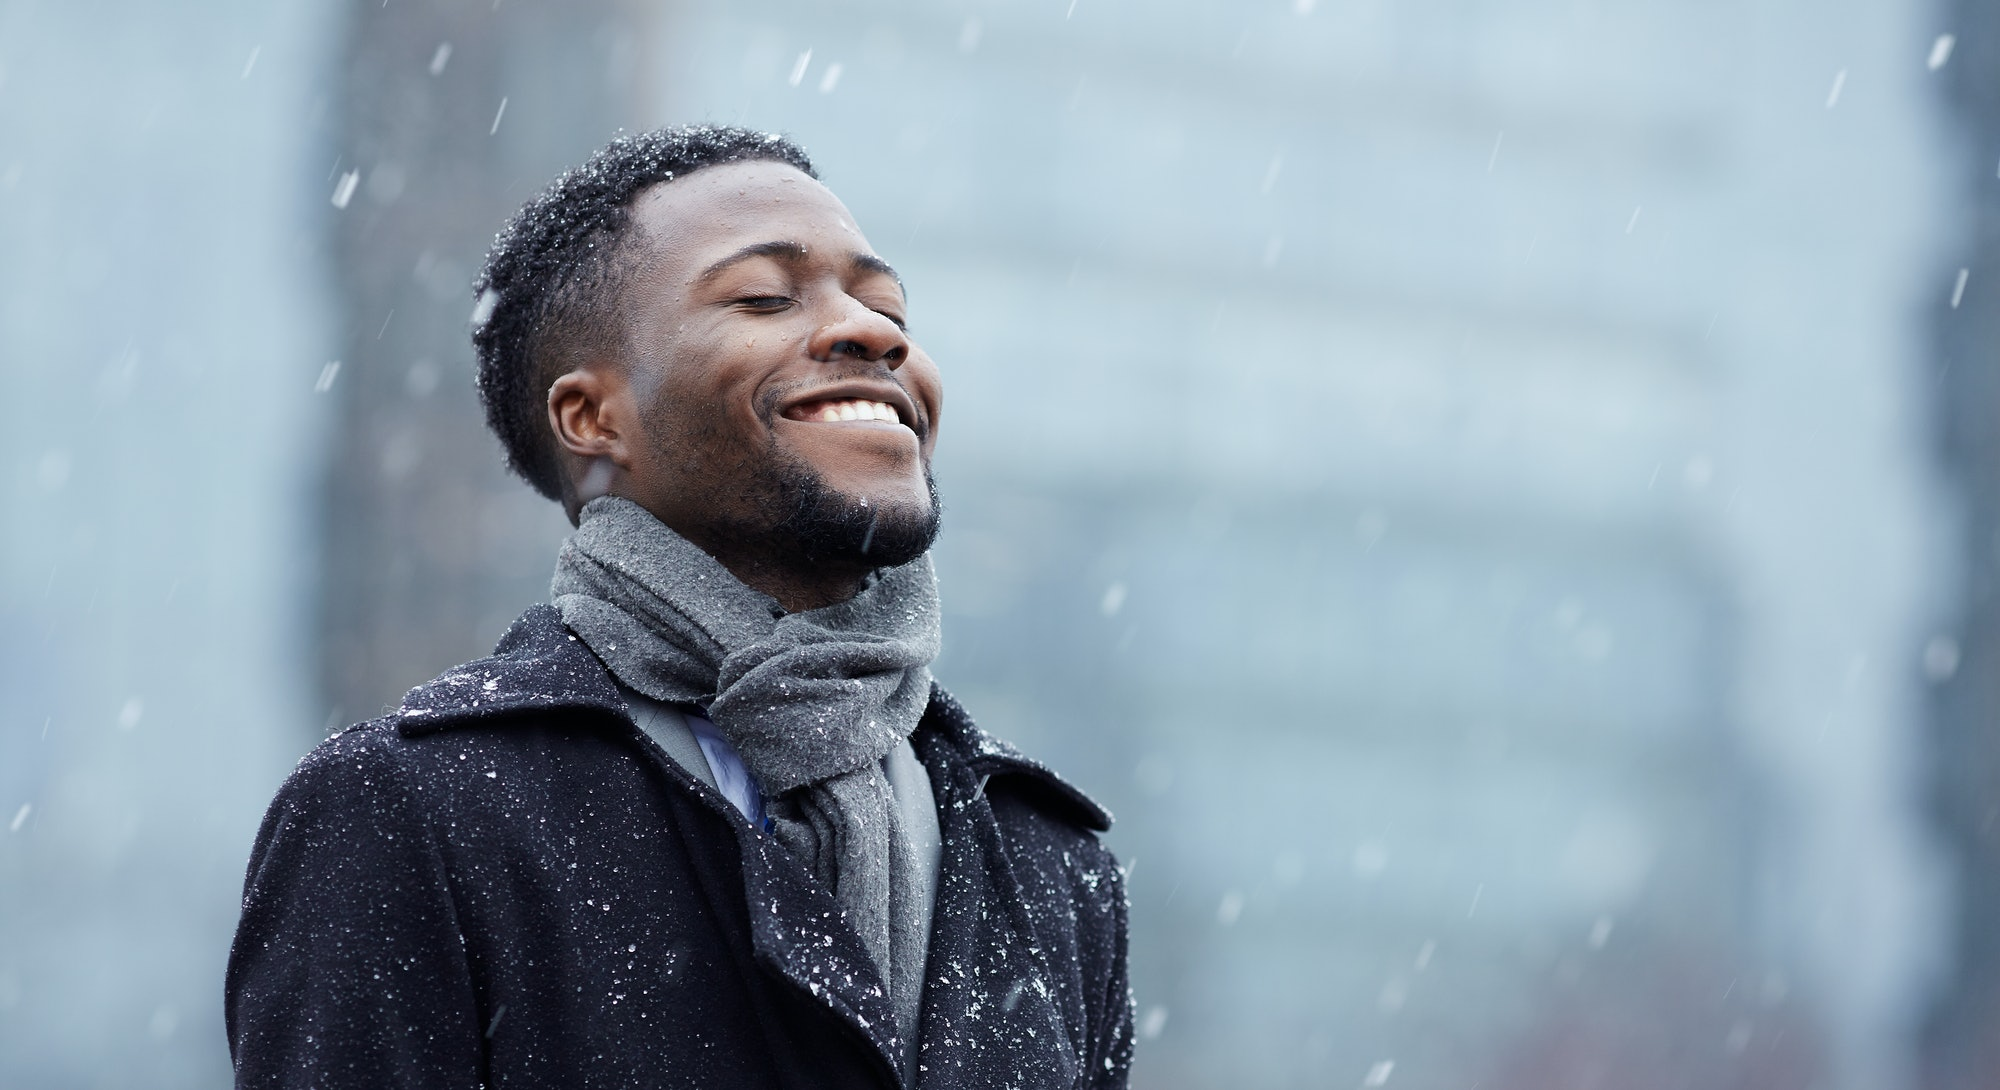 Cheerful man enjoying snowflakes falling from upwards